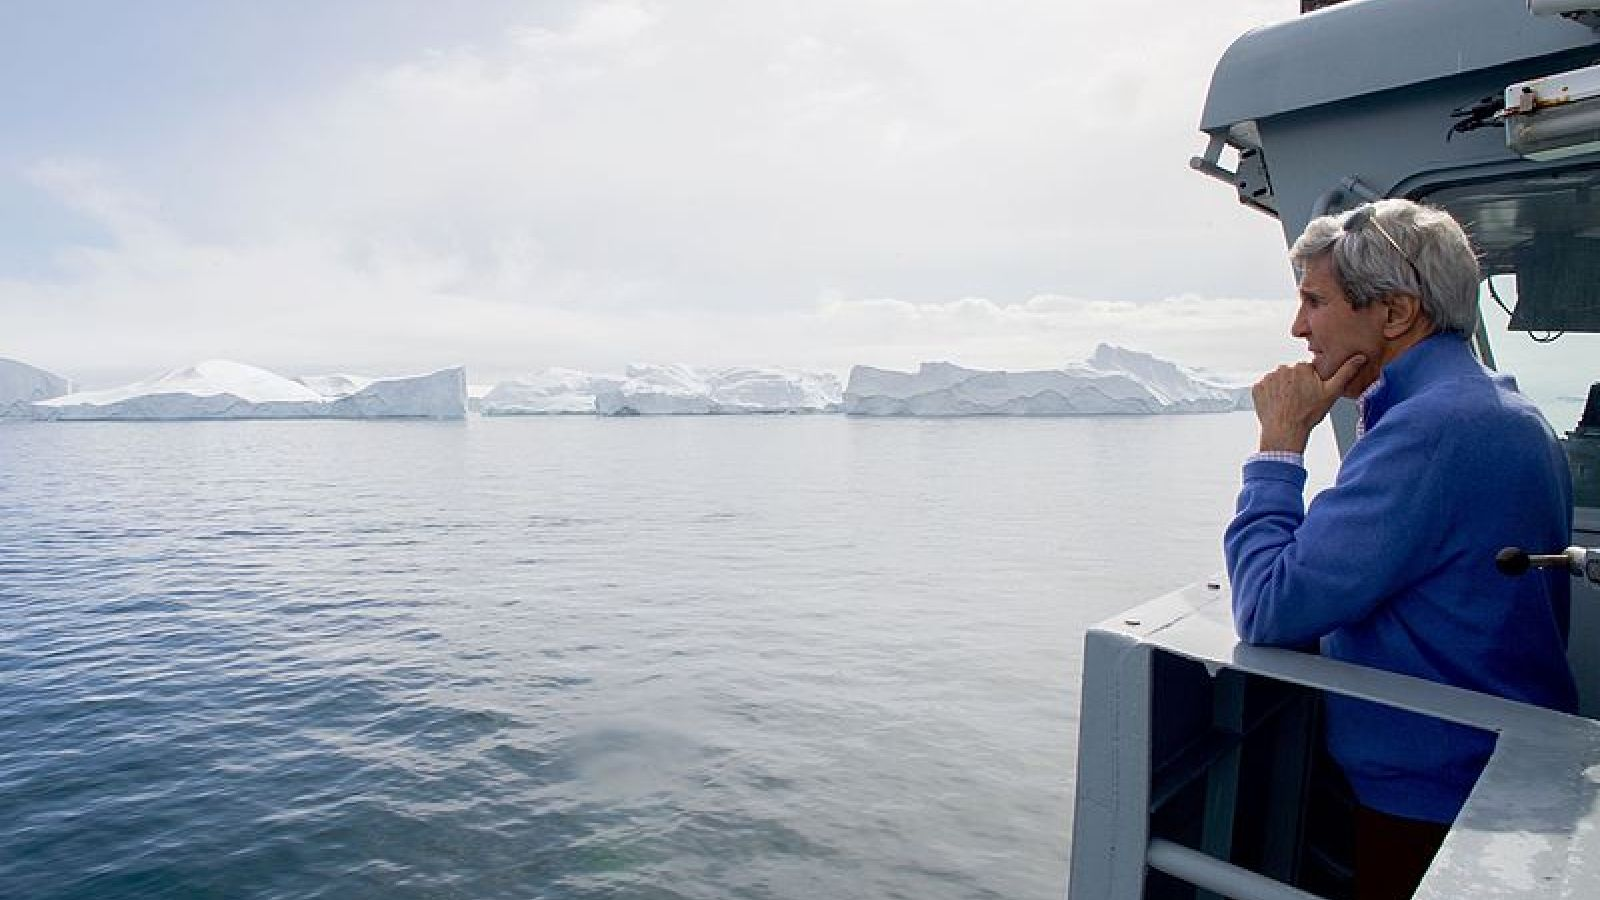 secretary_kerry_looks_at_icebergs_fro_the_bridge_of_the_hdms_thetis_after_it_pulled_out_of_the_port_of_ilulissat_greenland_27184414094